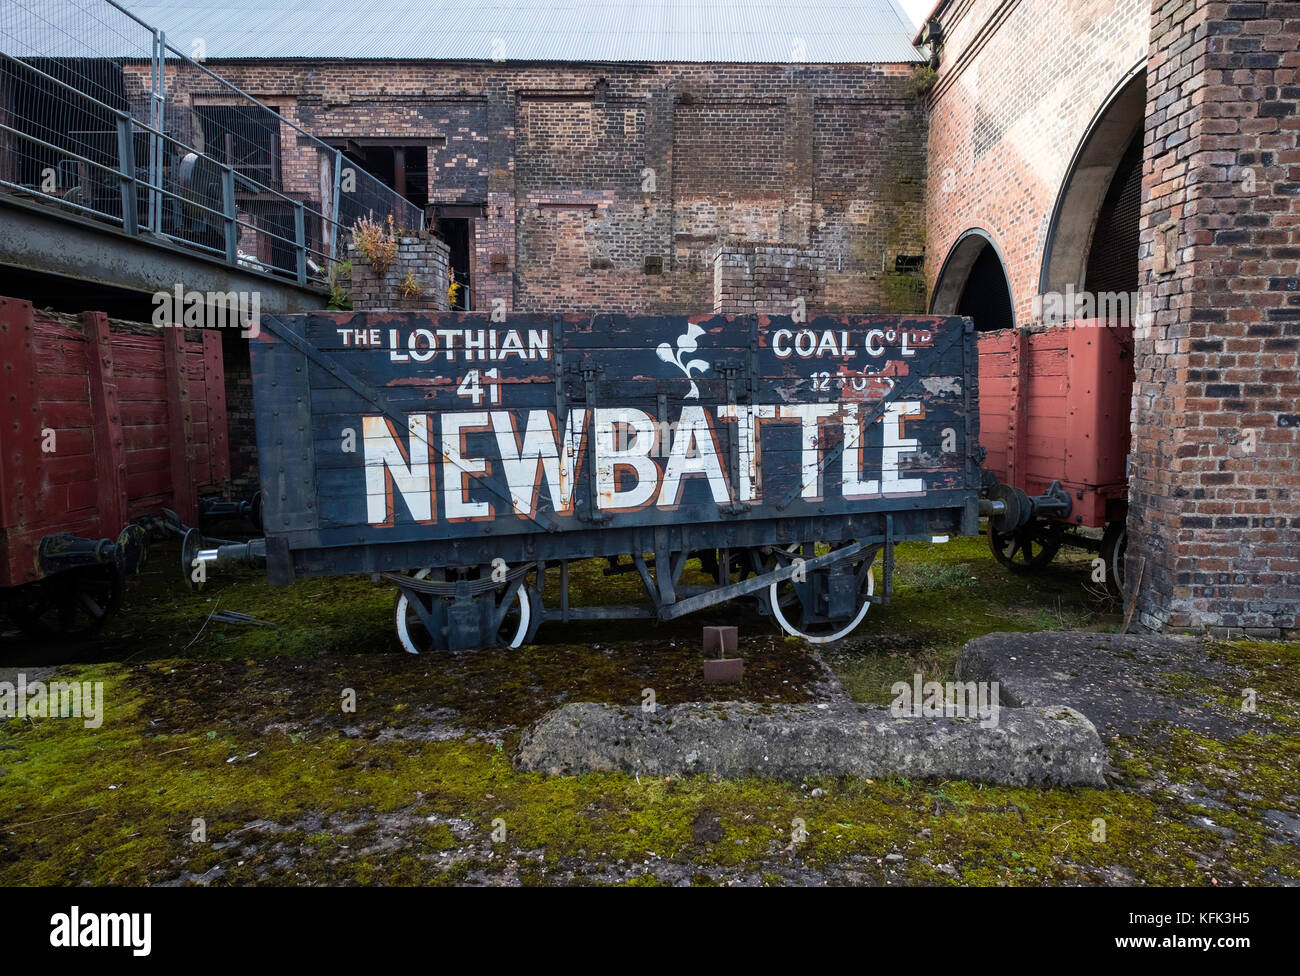 Old railway car for transporting coal  at the National Mining Museum at Newtongrange in Scotland, United Kingdom. - Stock Image